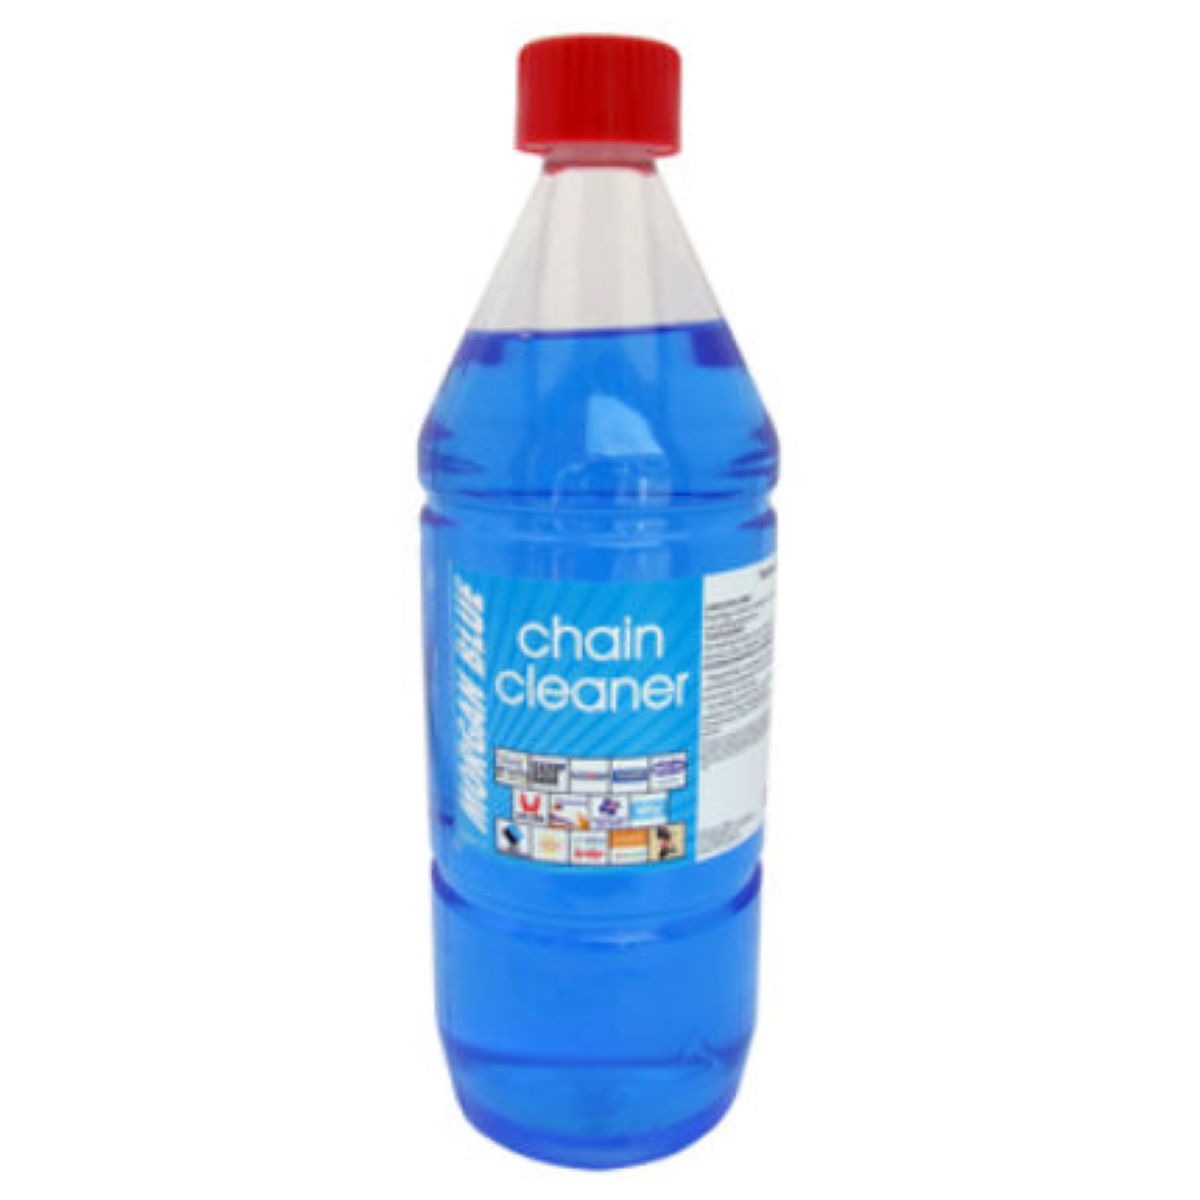 Morgan Blue Morgan Blue Chain Cleaner - 1000ml Bottle with Spray Head   Cleaning Products